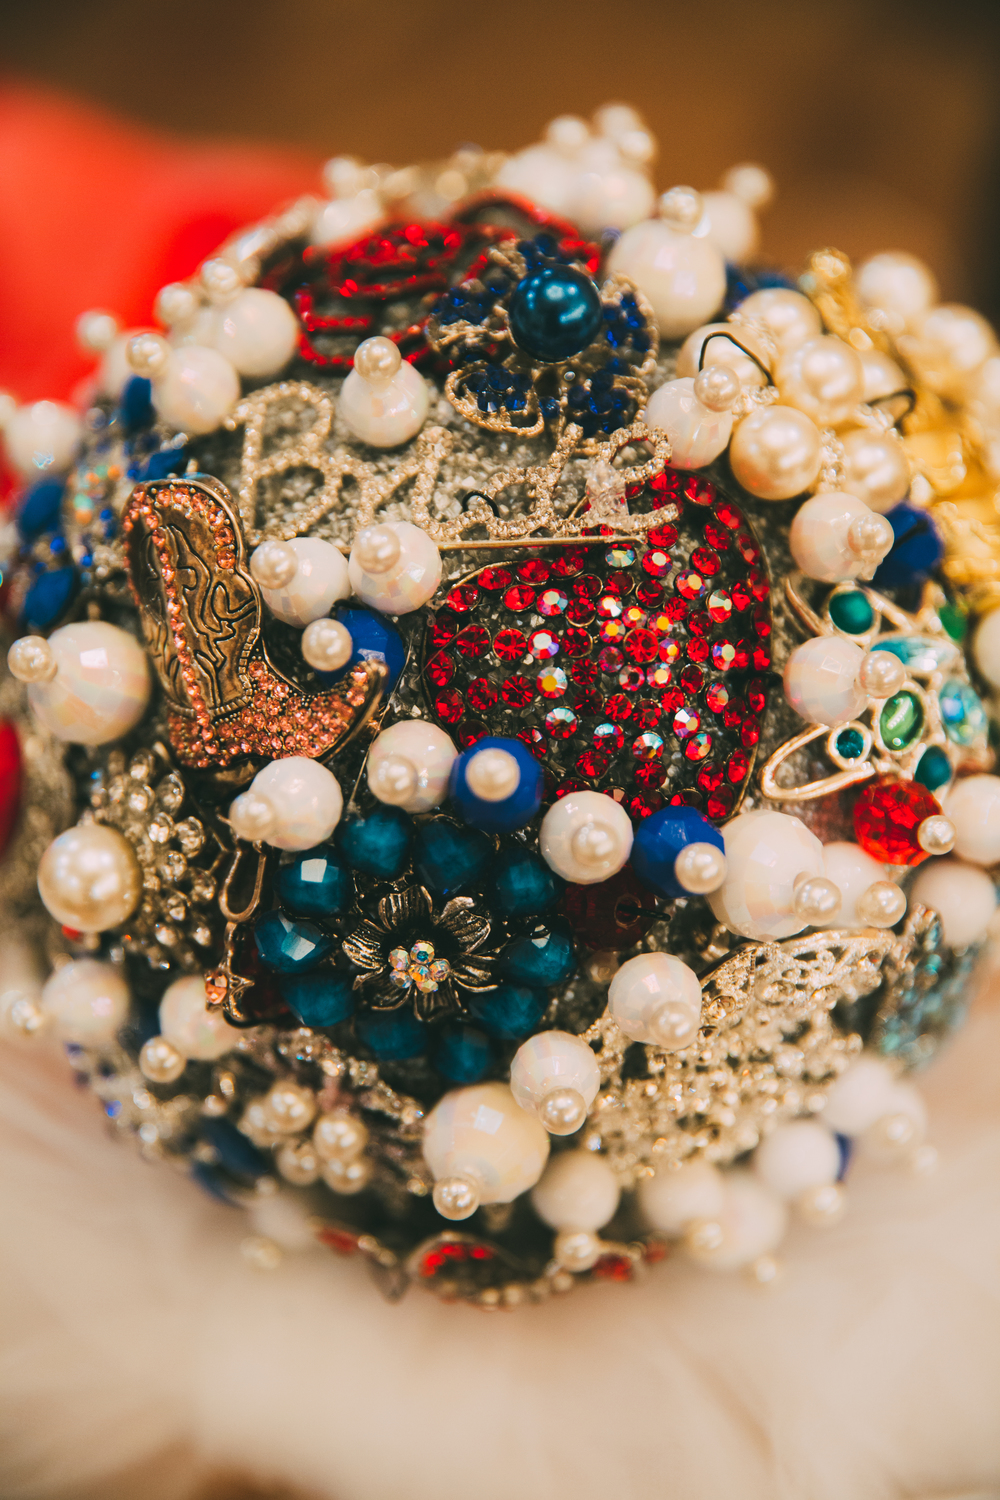 The bride's brooch bouquet included family heirlooms and gifts from loved ones.